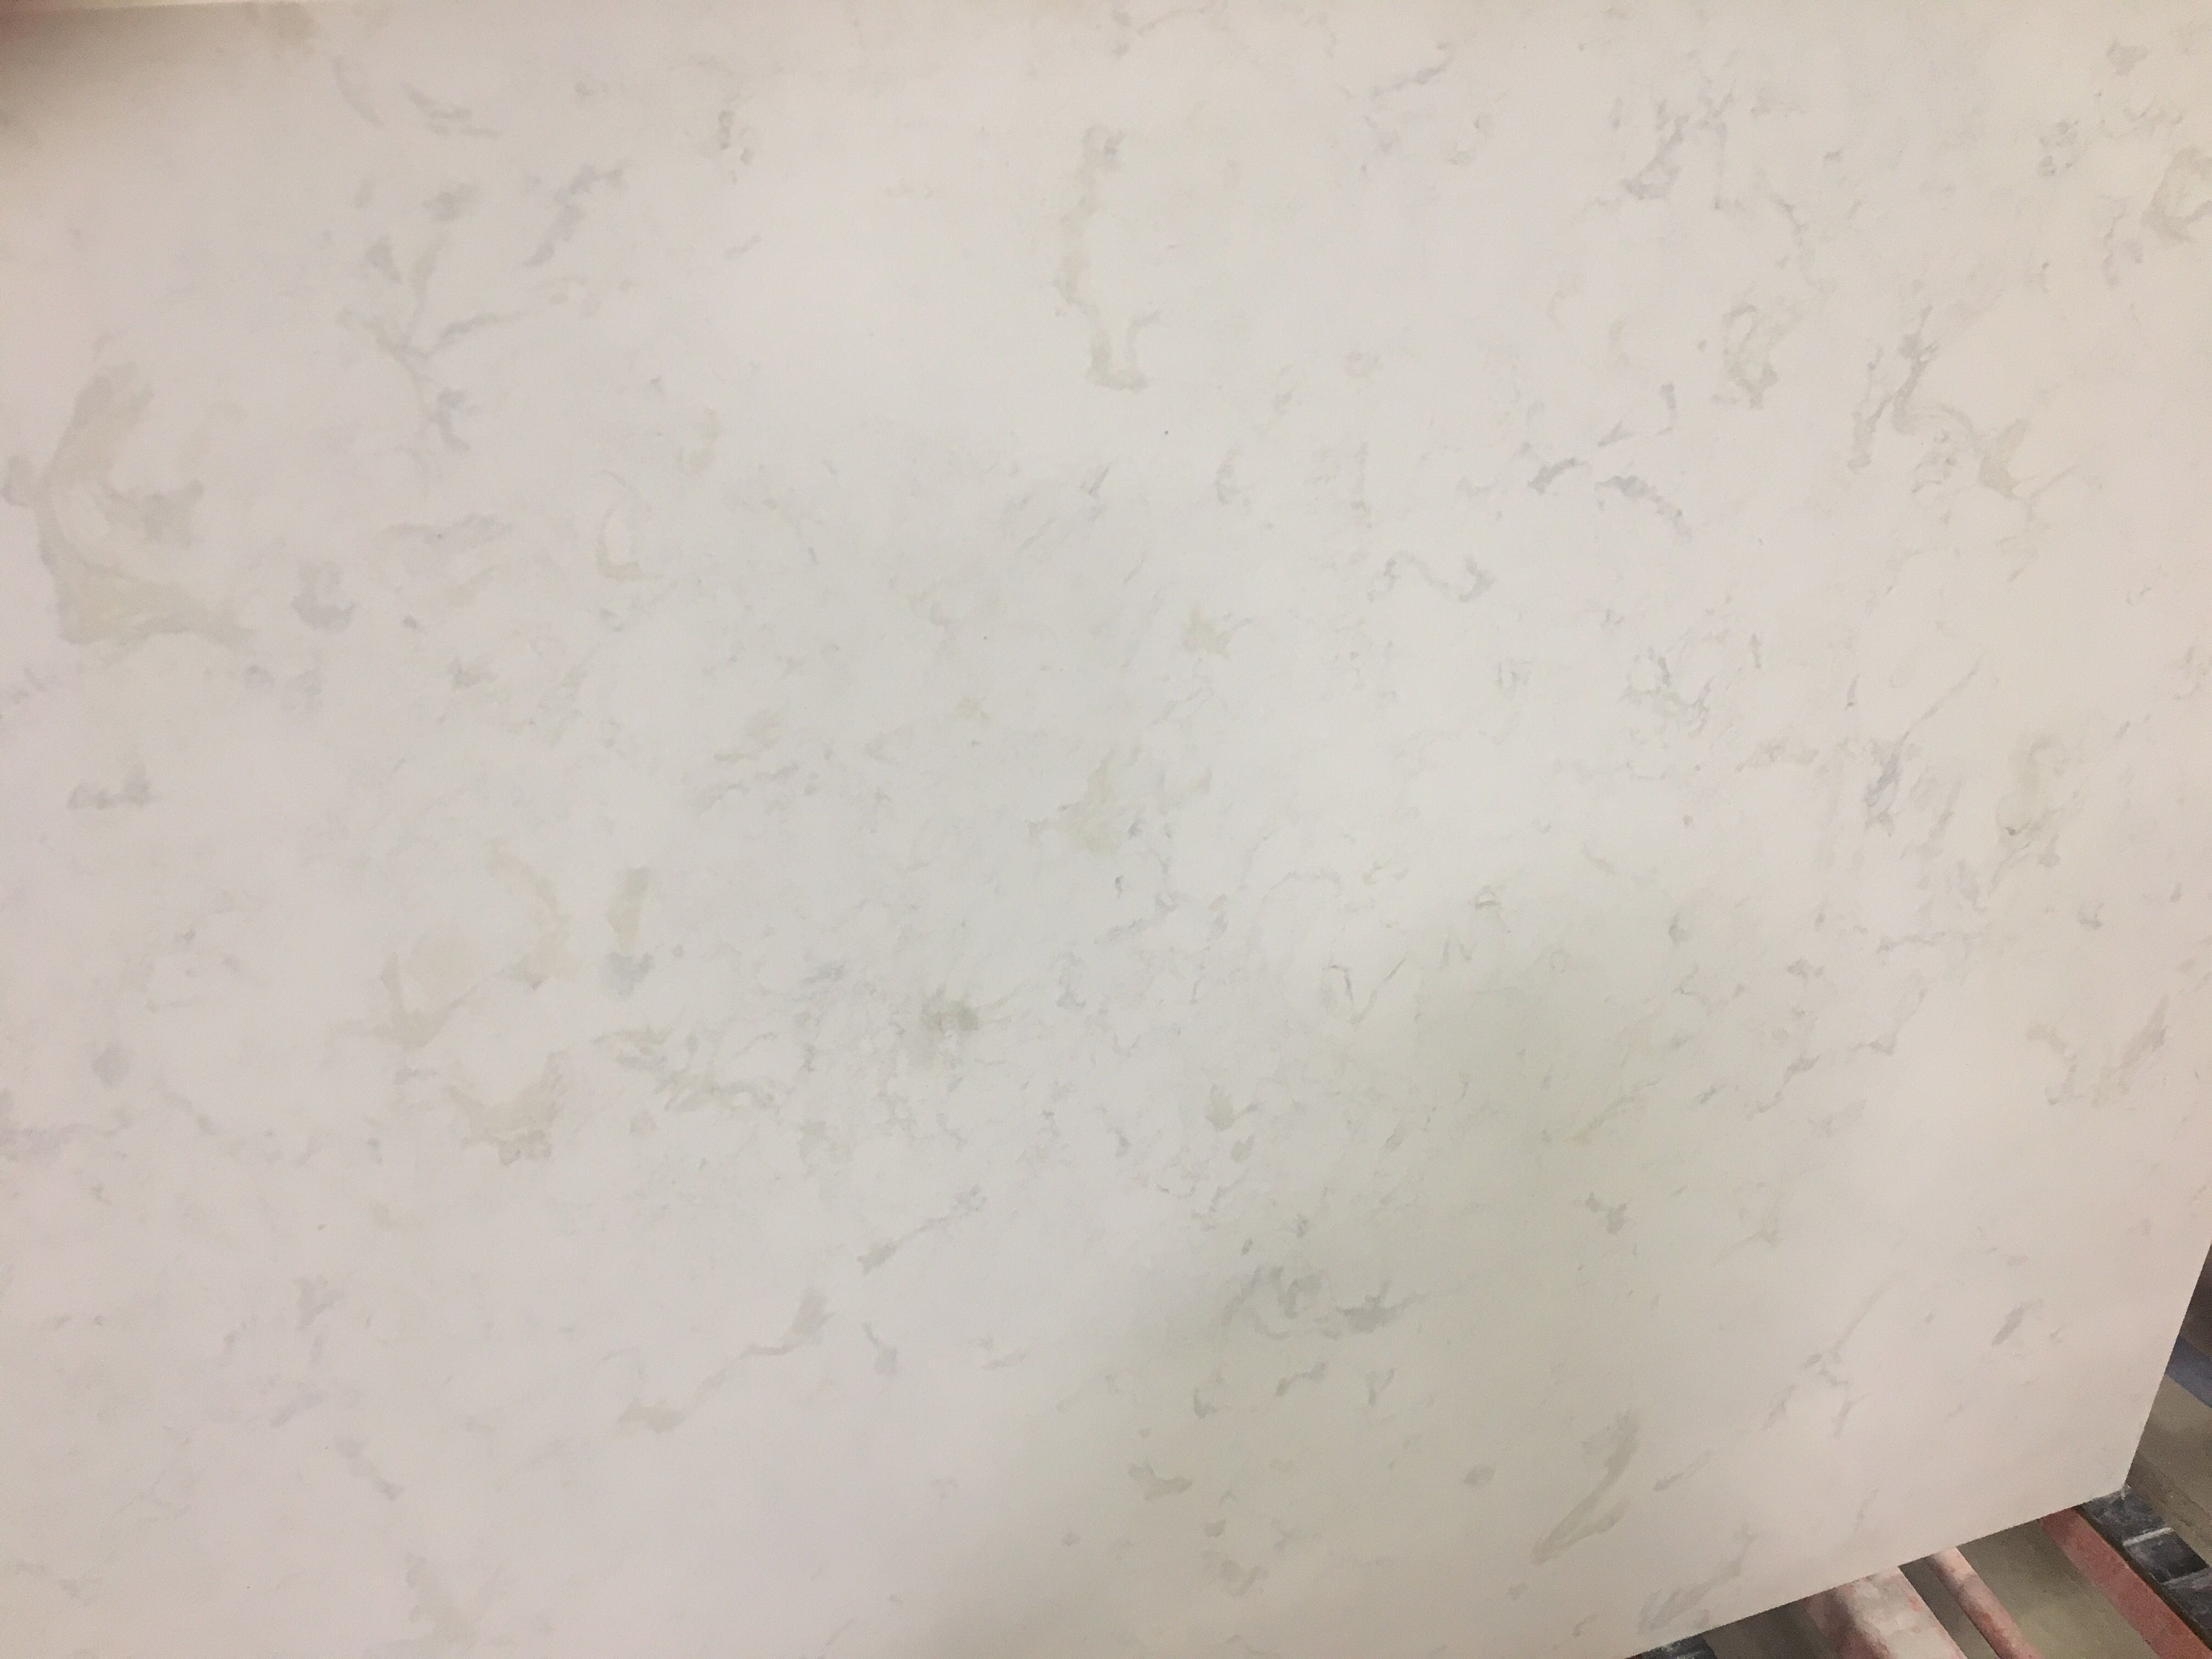 Cambria Torquay Quartz This Is The Slab For Our Bathroom 2 From